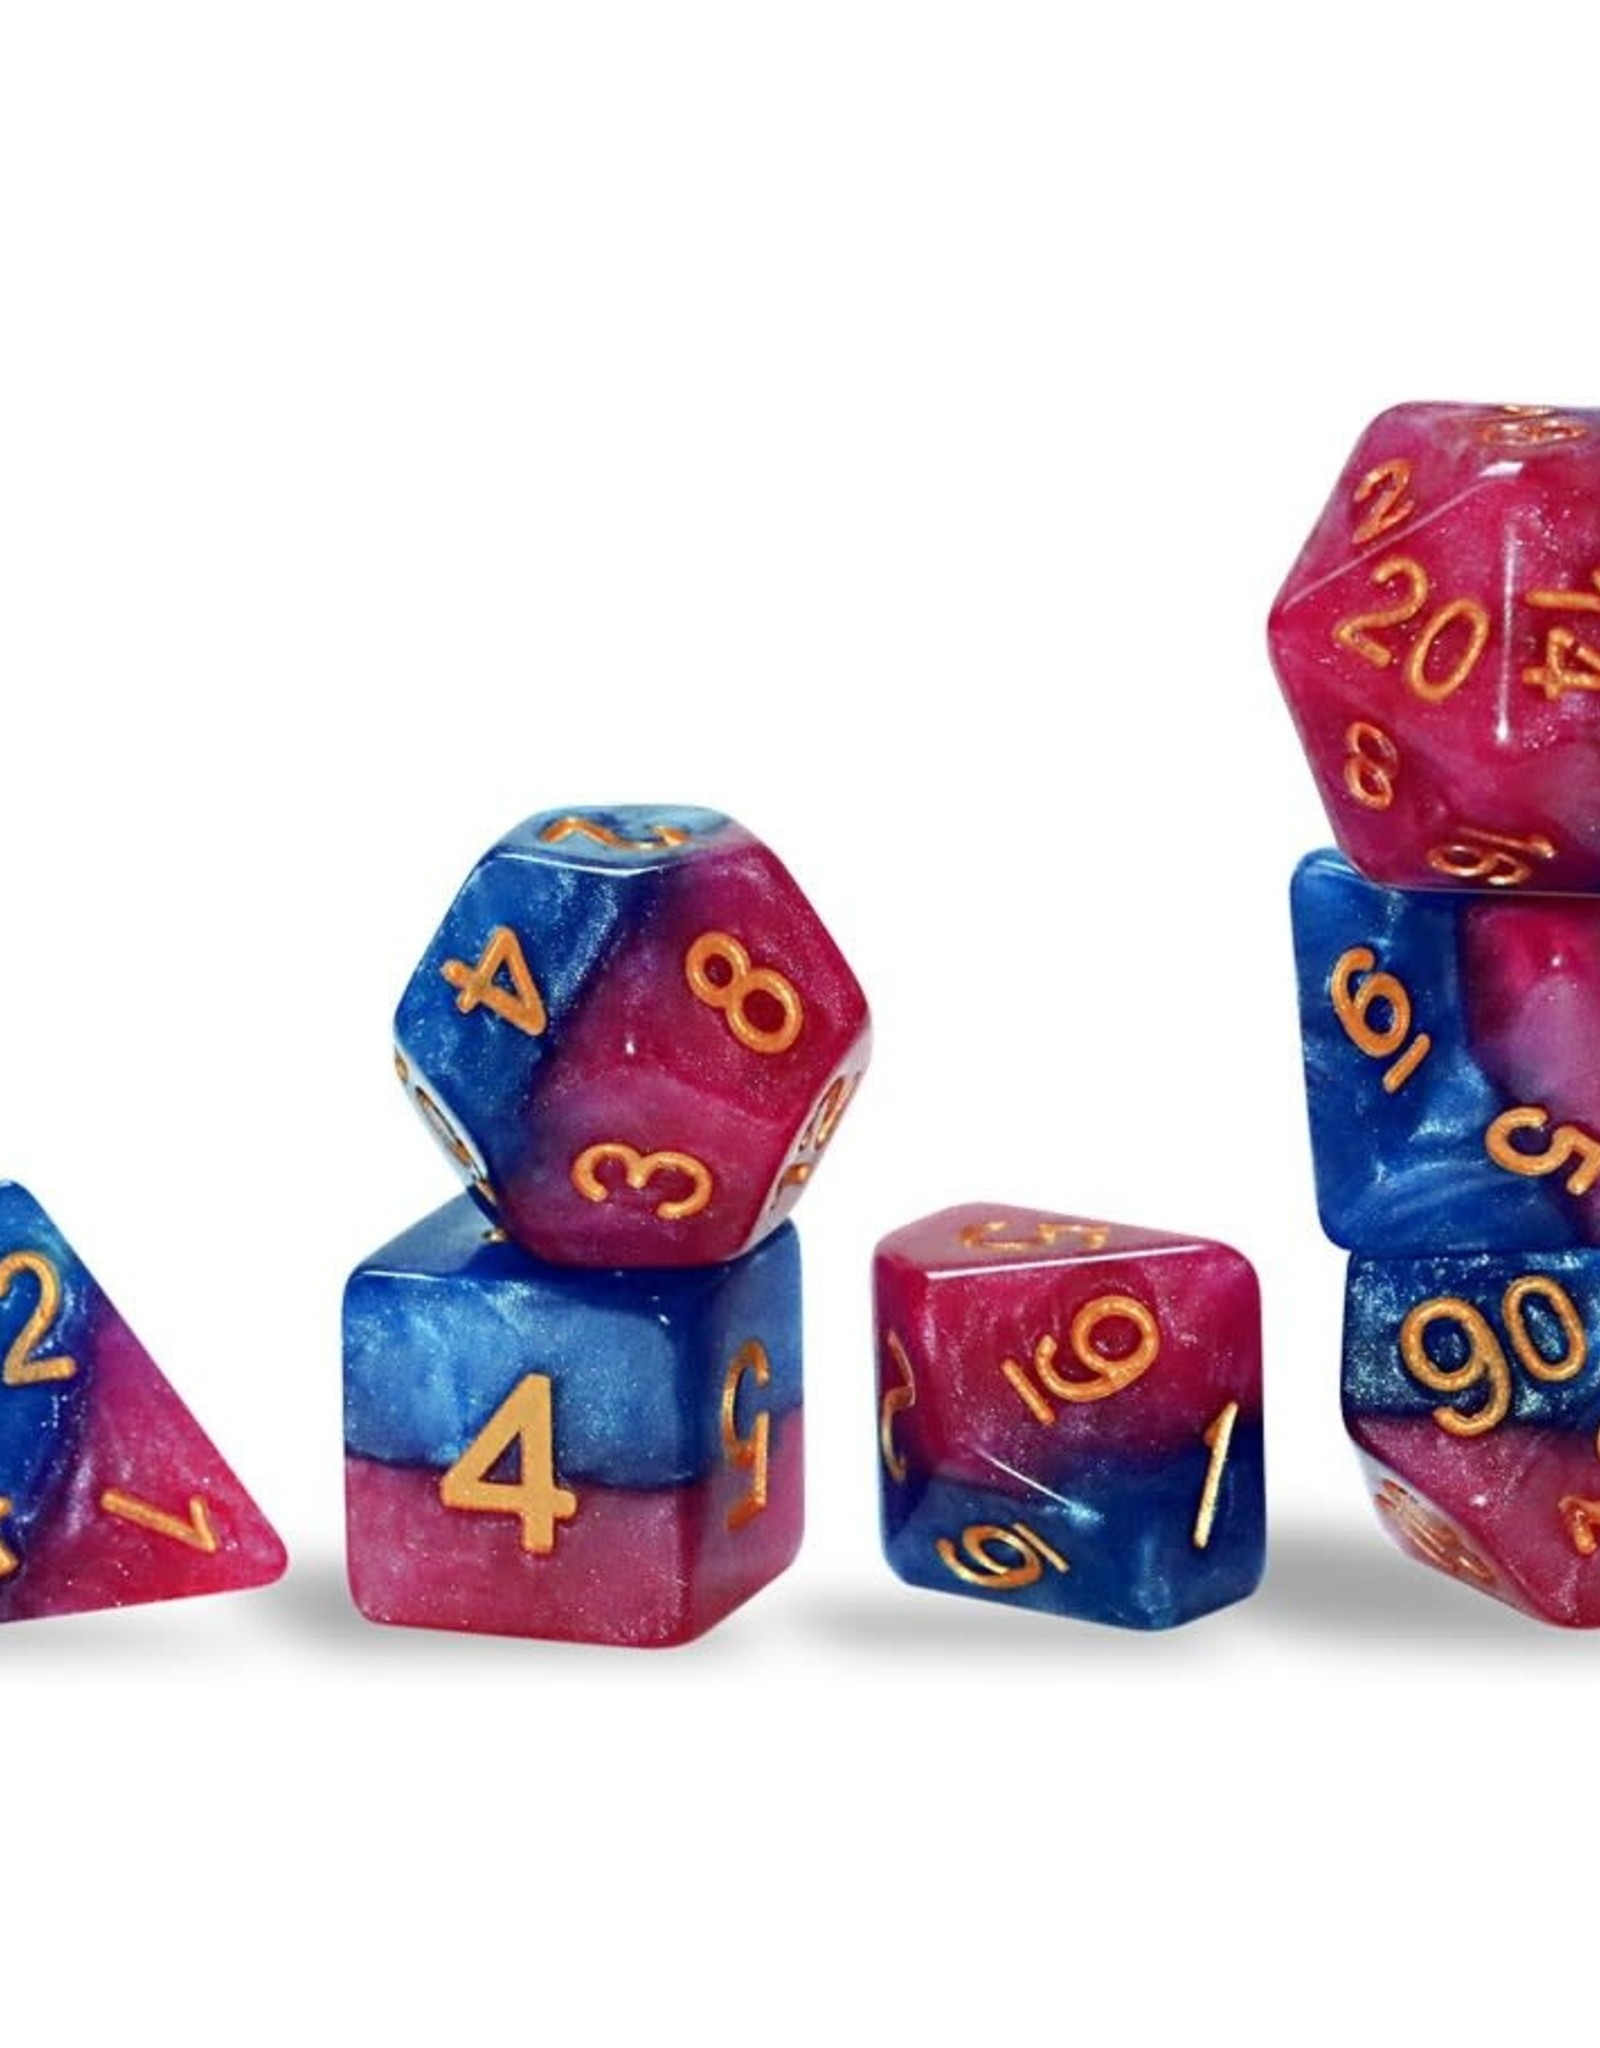 Gate Keeper Games Halfsies Dice: The Court Jester (7 Polyhedral Dice Set)